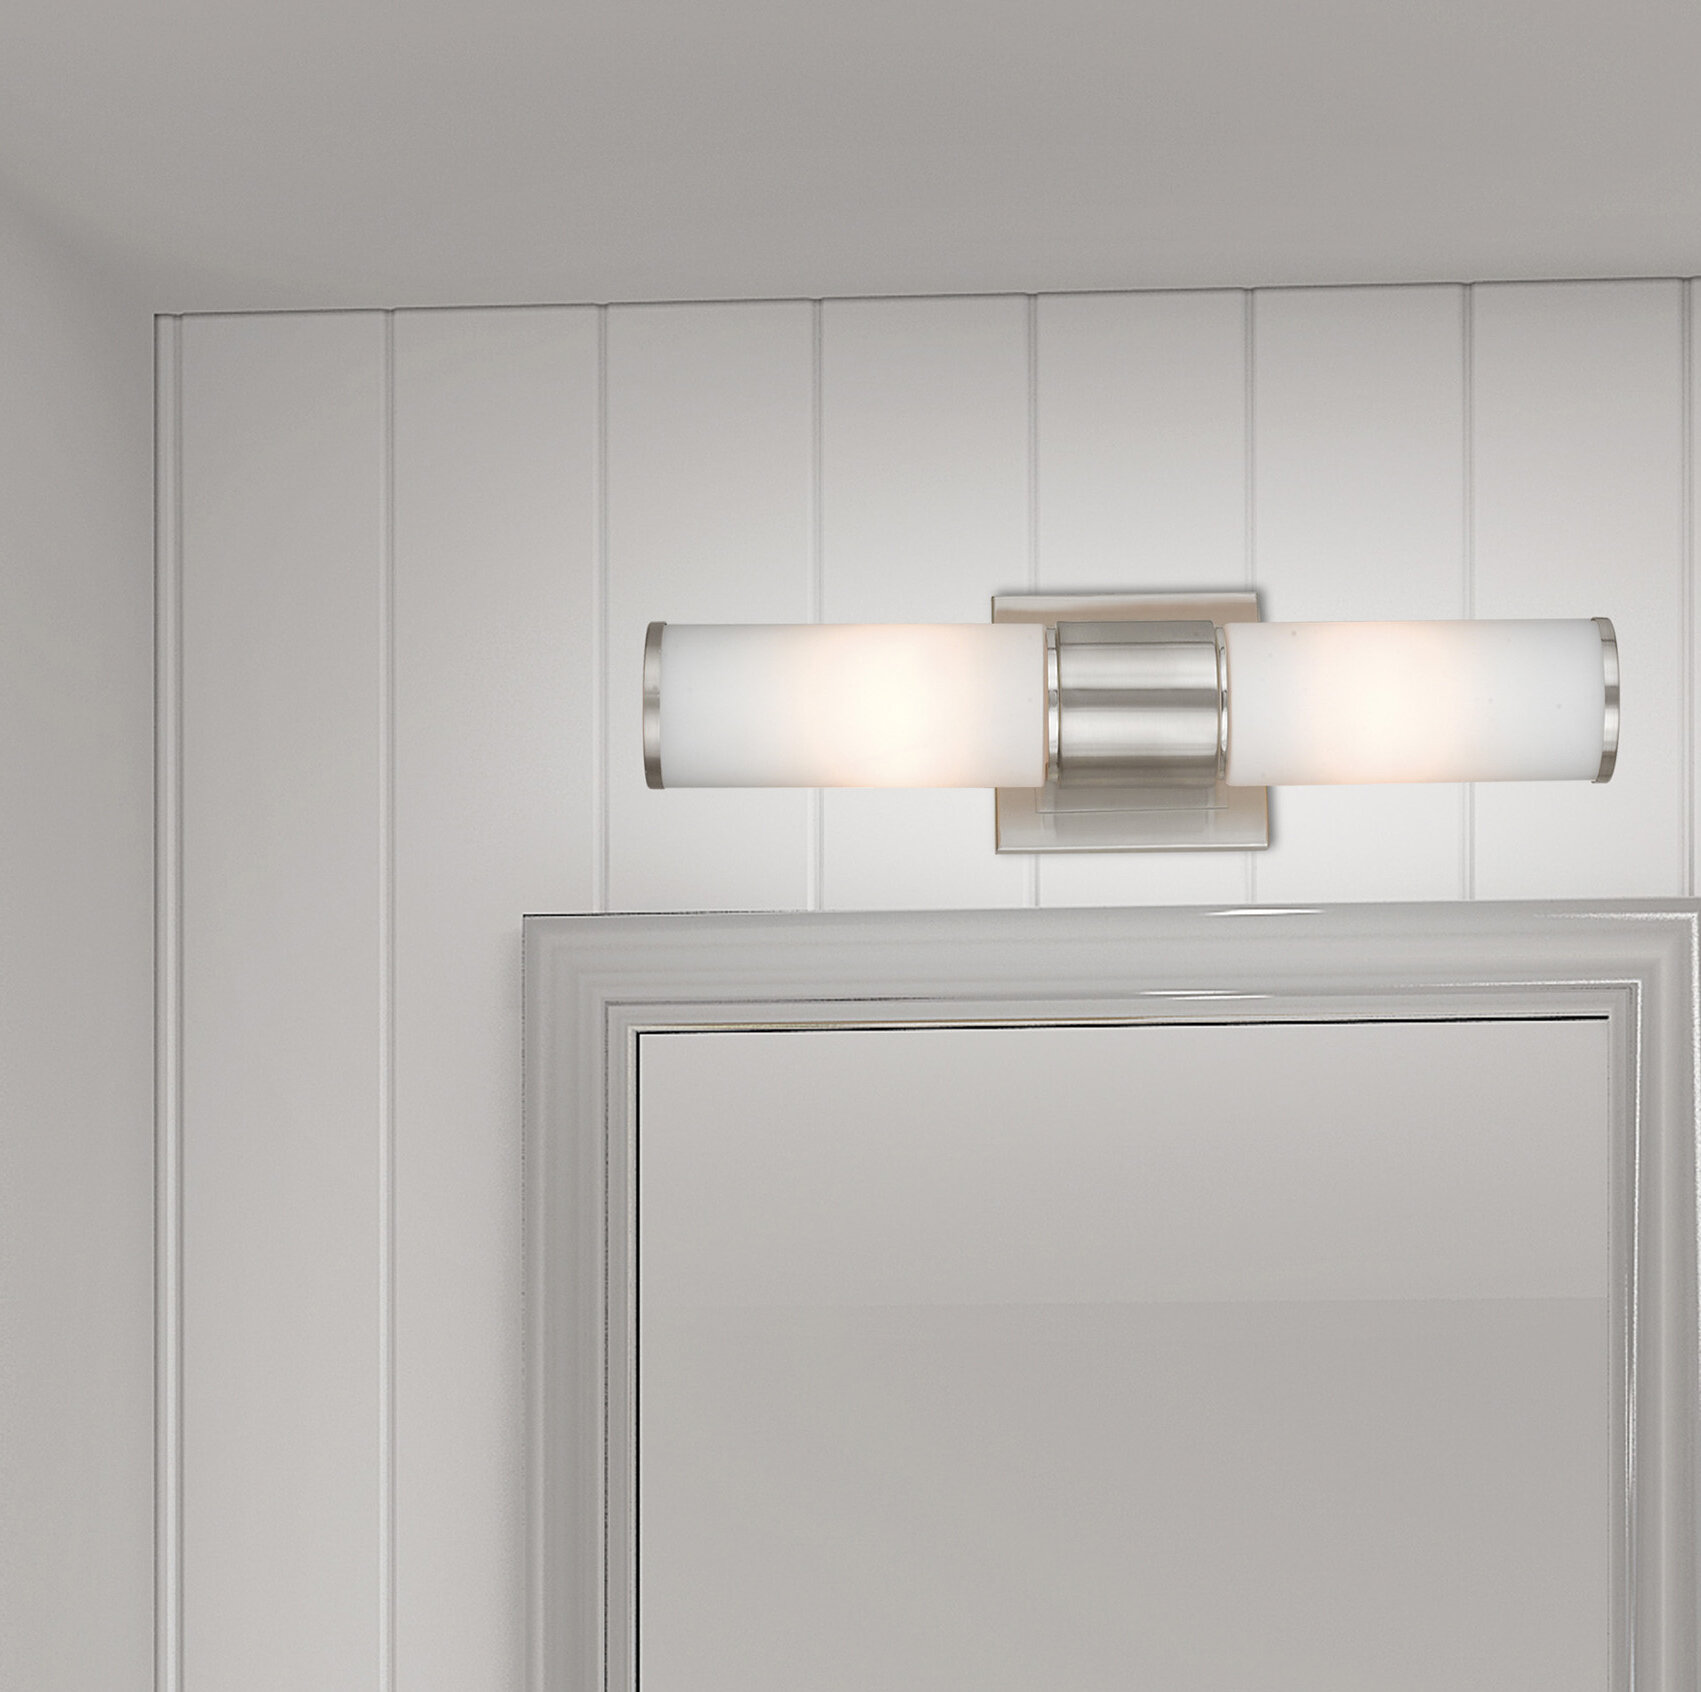 Kramer 2 Light Wall Sconce Reviews